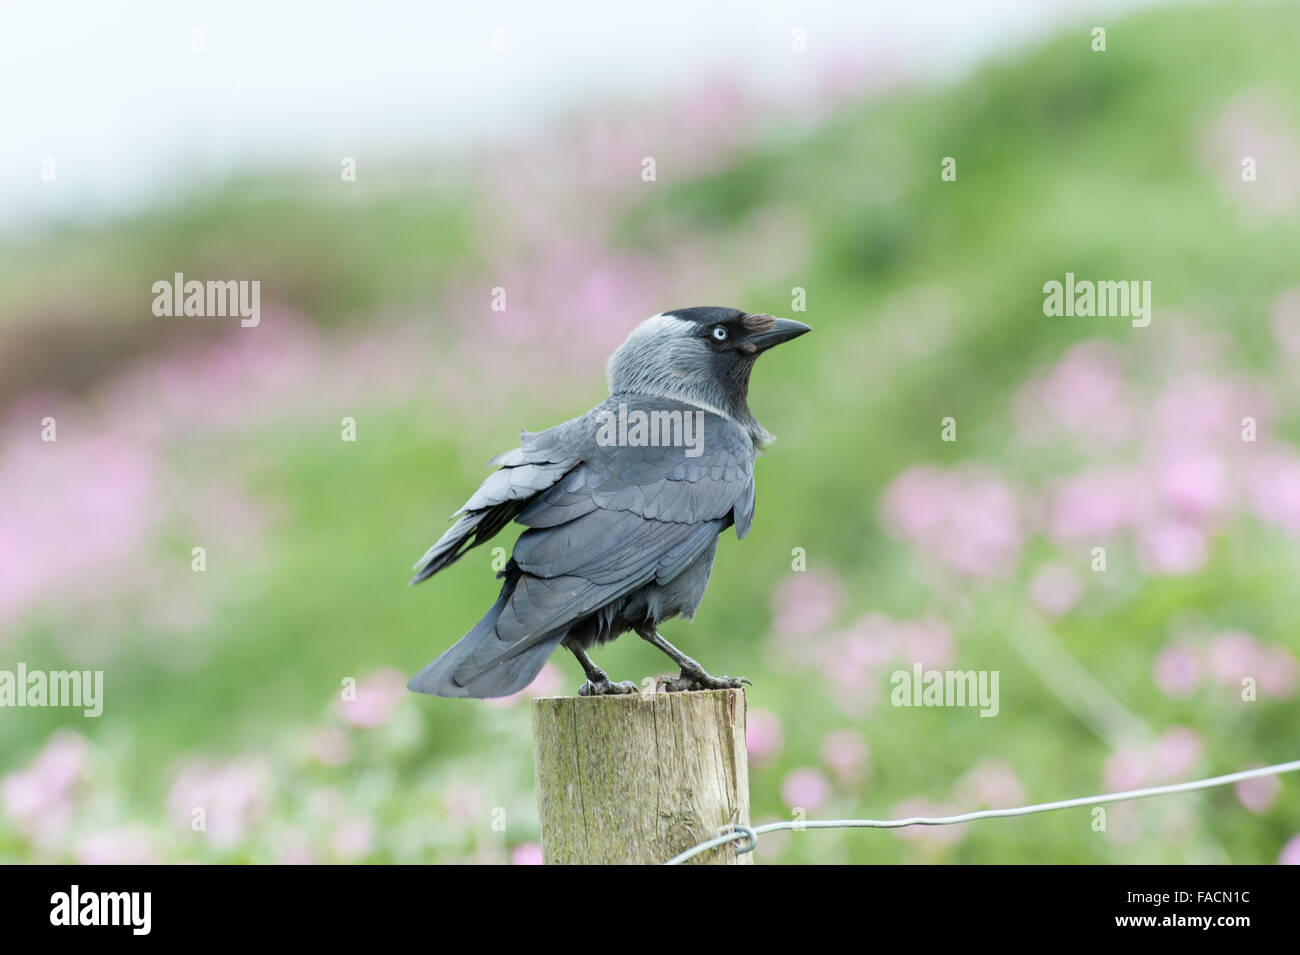 Jackdaw sitting on a fence post - Stock Image